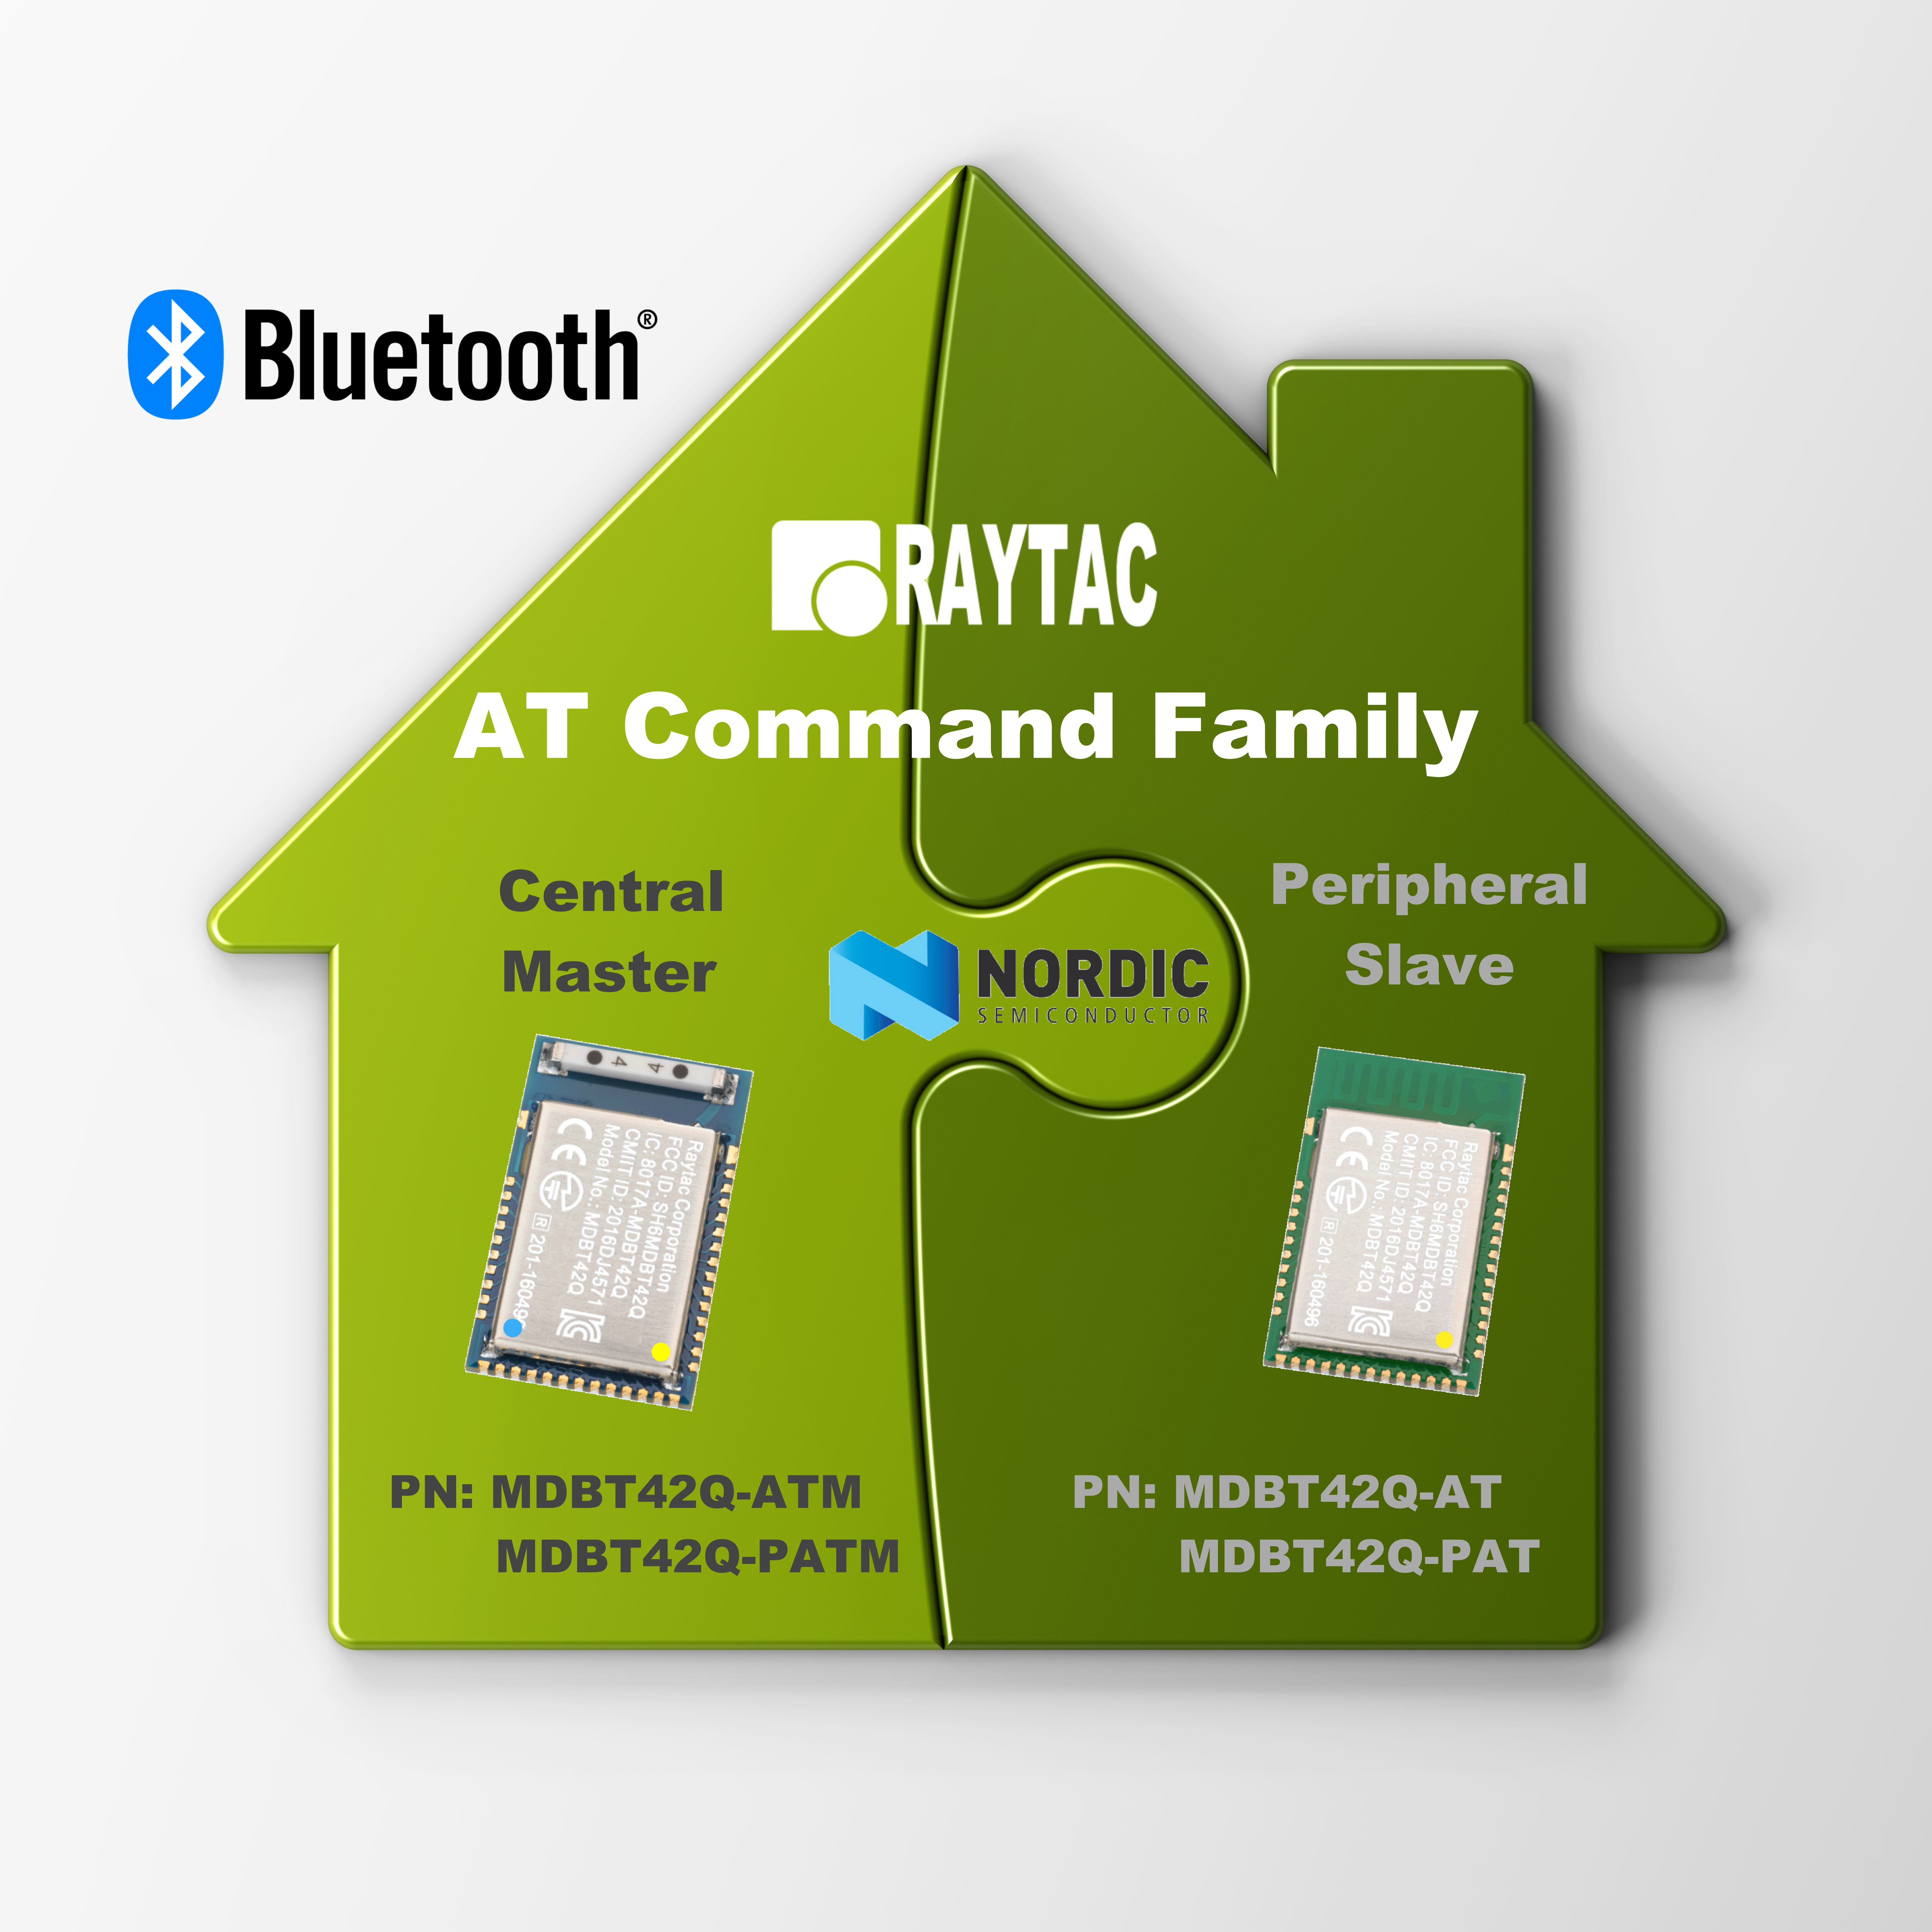 Raytac AT Command Family